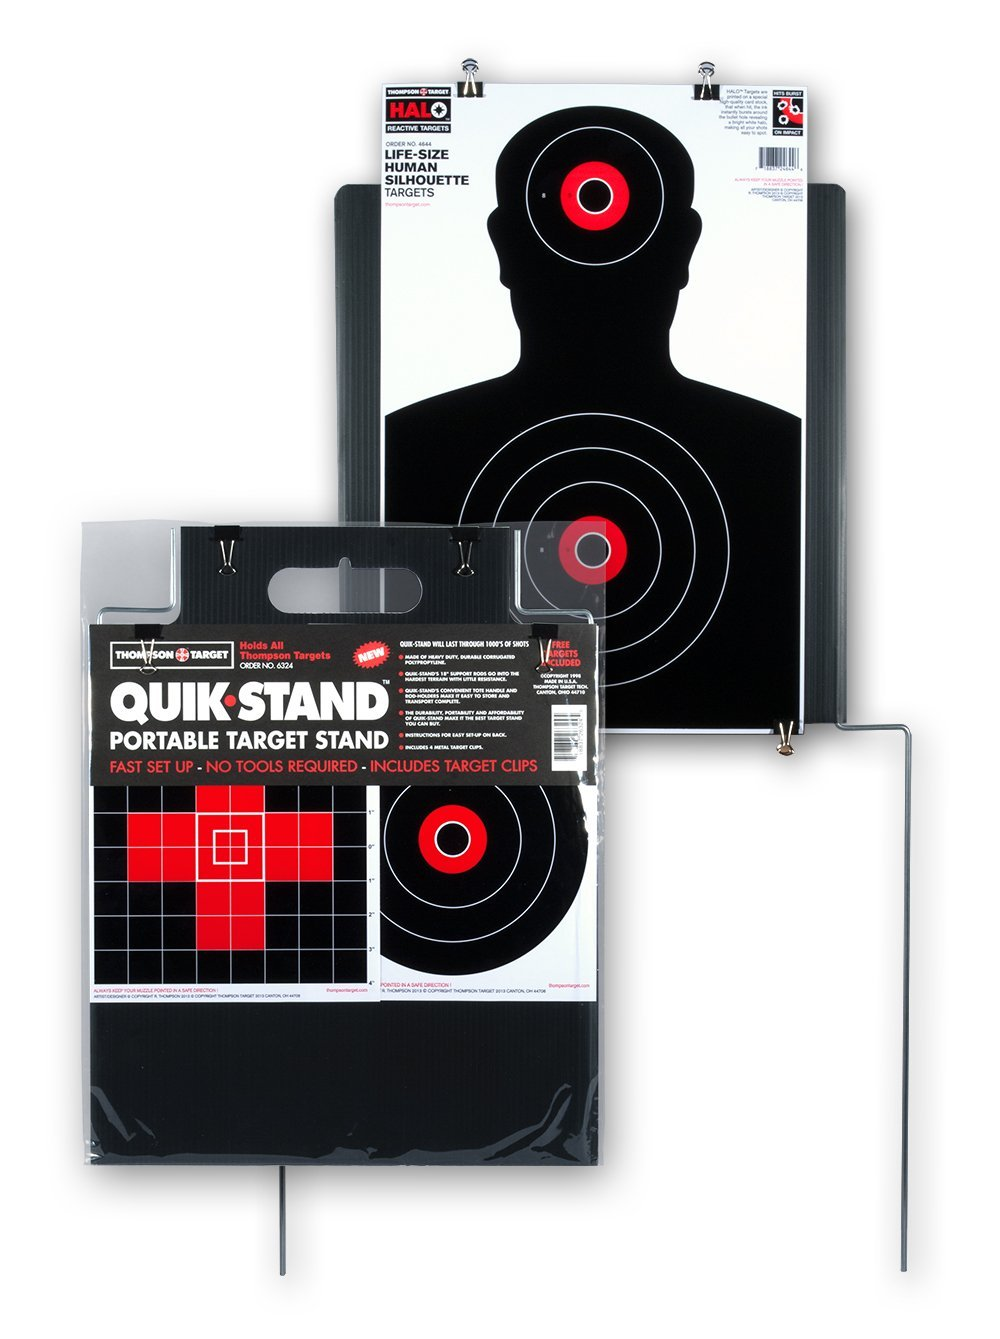 Quick Stand - Portable Outdoor Target Stand for Shooting by Thompson Target (Image #1)